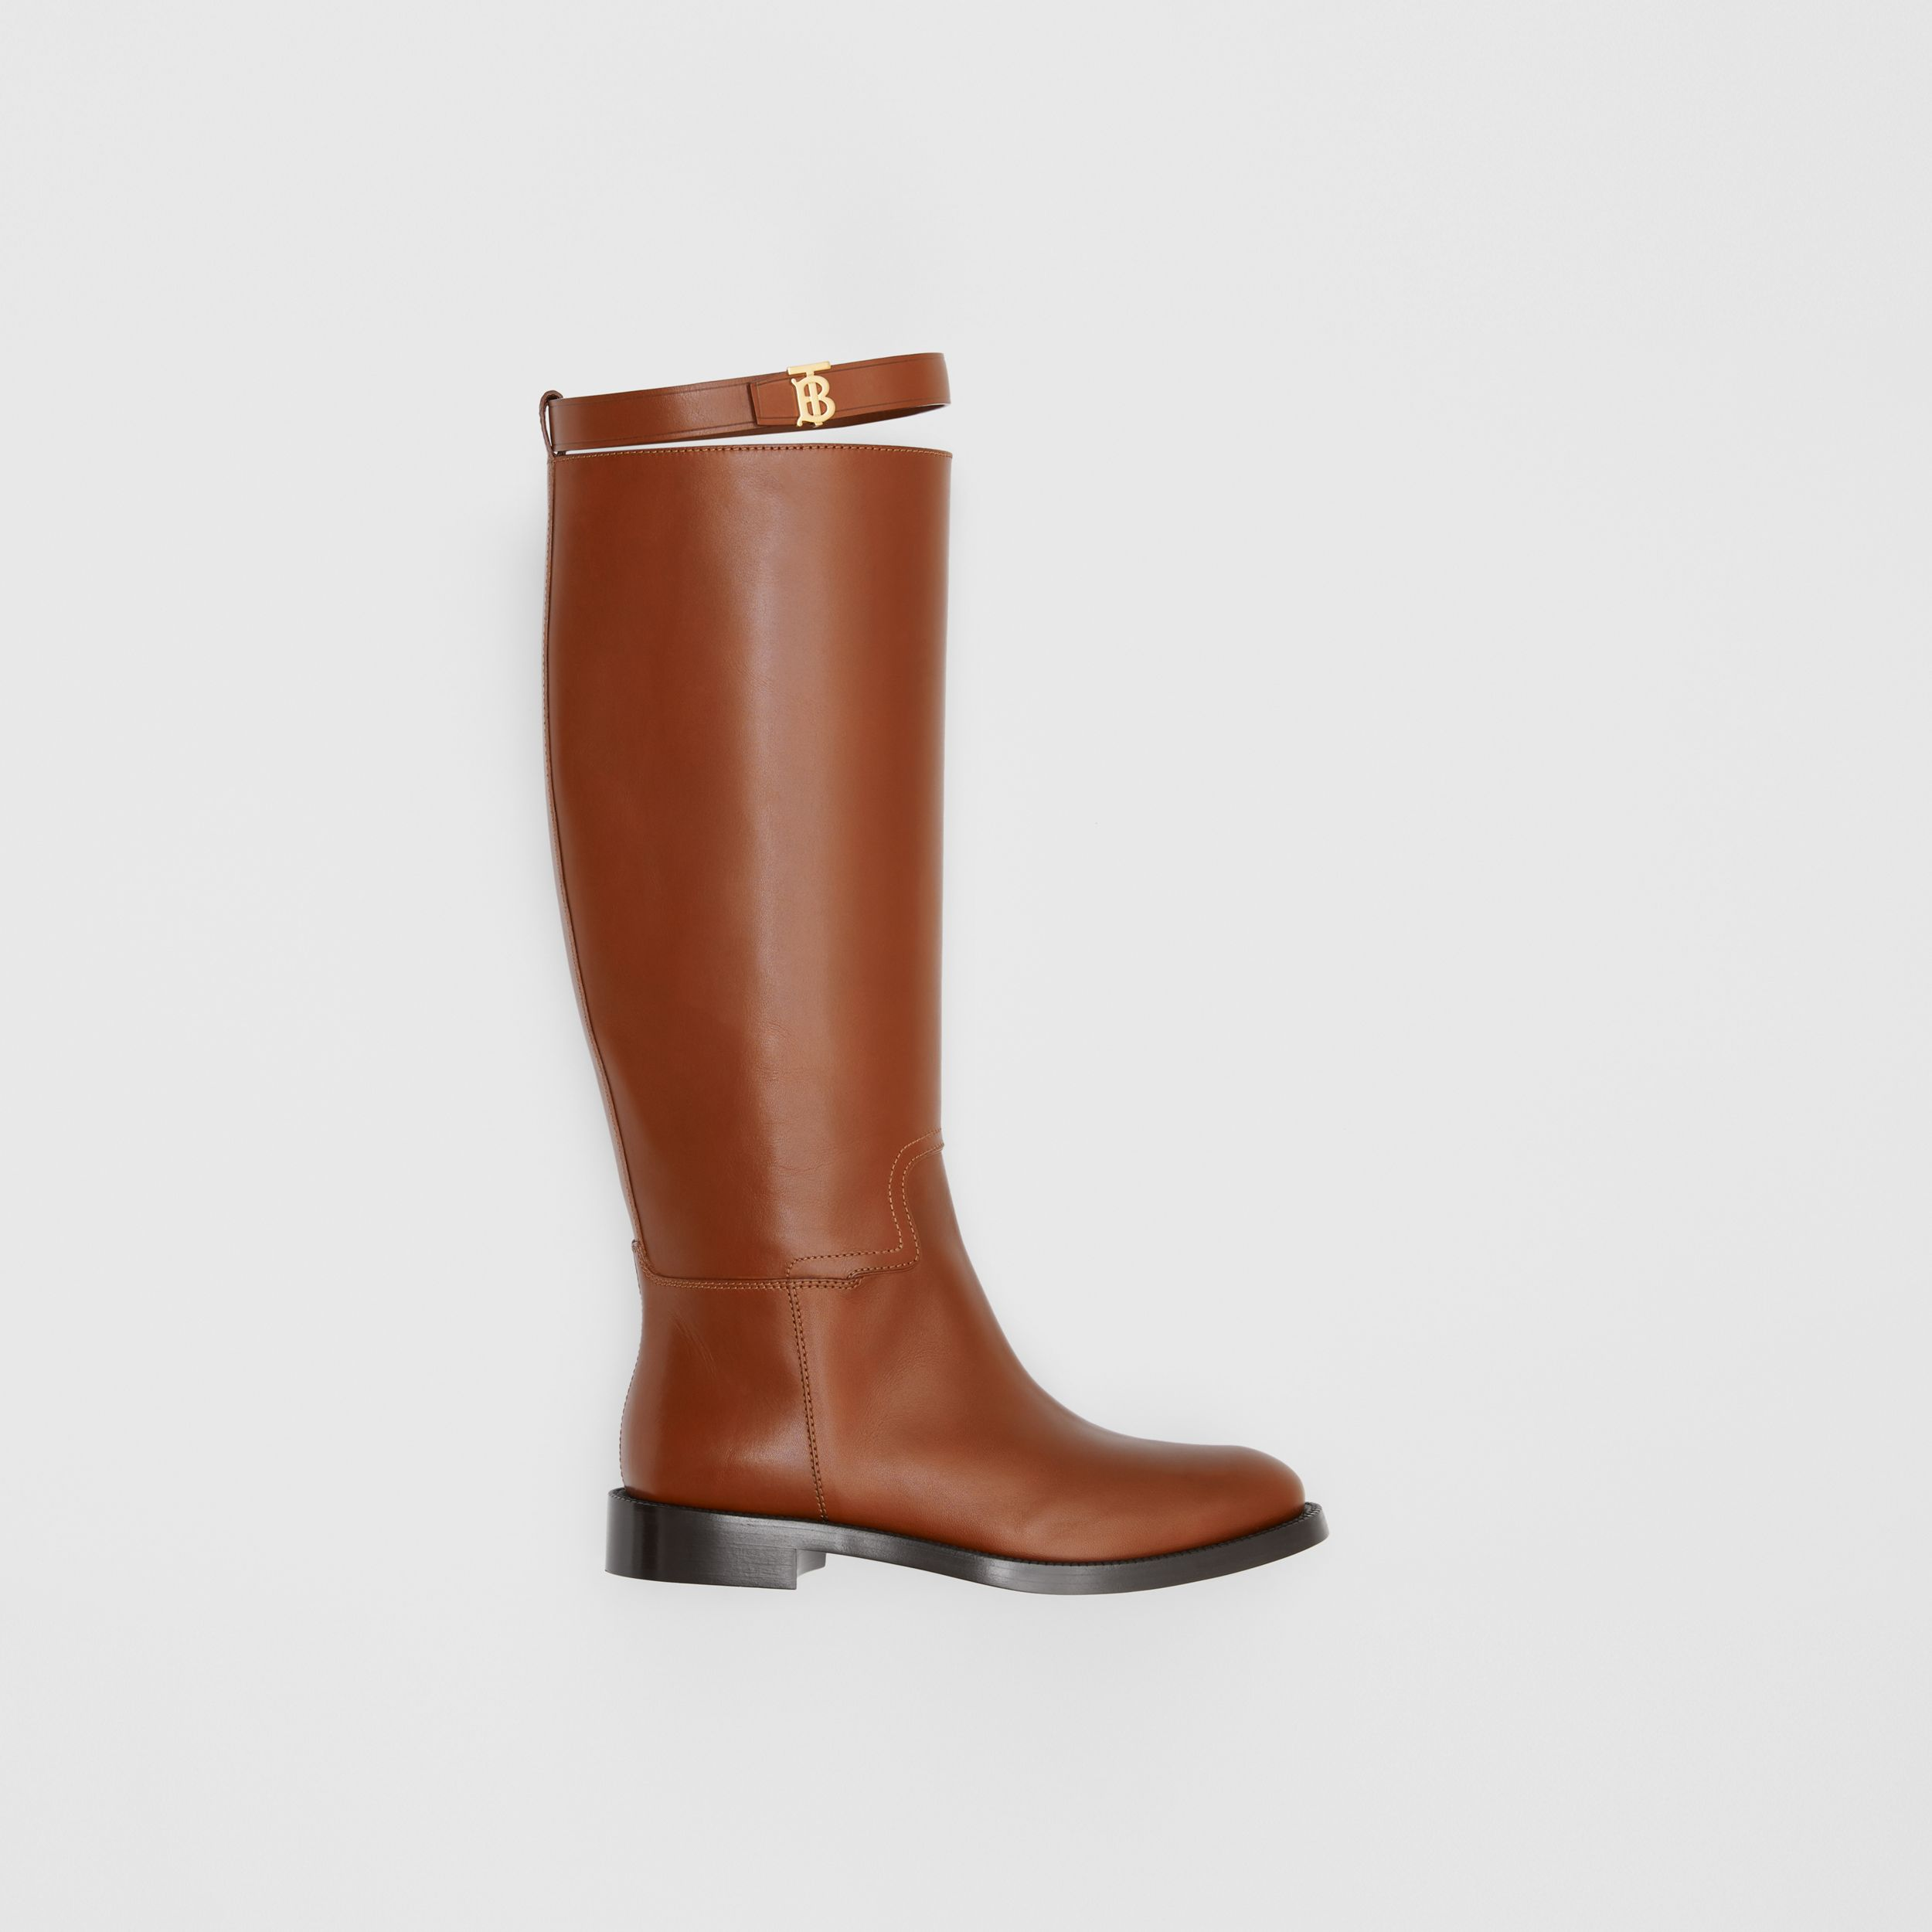 Monogram Motif Leather Knee-high Boots in Tan - Women | Burberry Singapore - 1